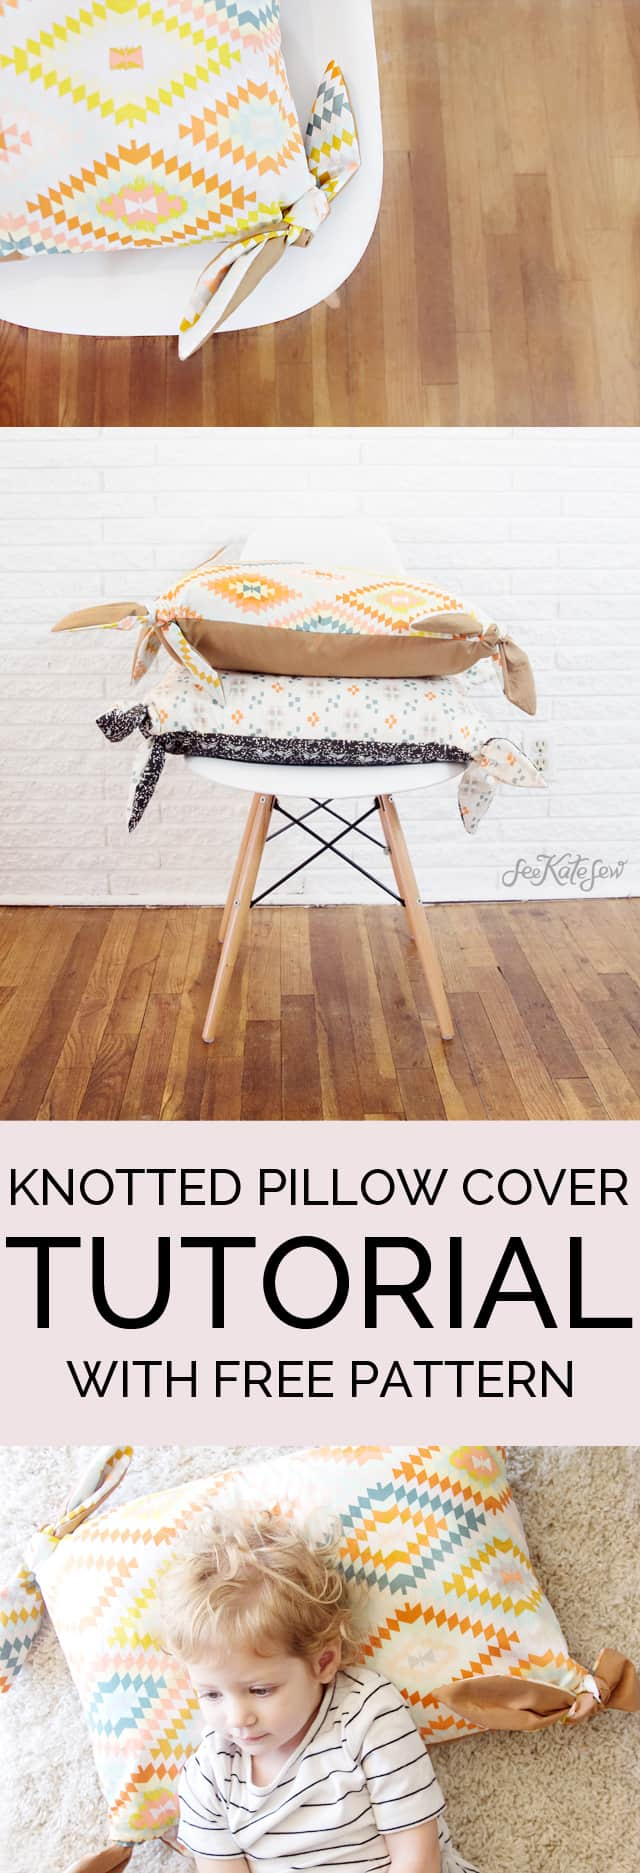 KNOTTED PILLOW COVER TUTORIAL // seekatesew.com